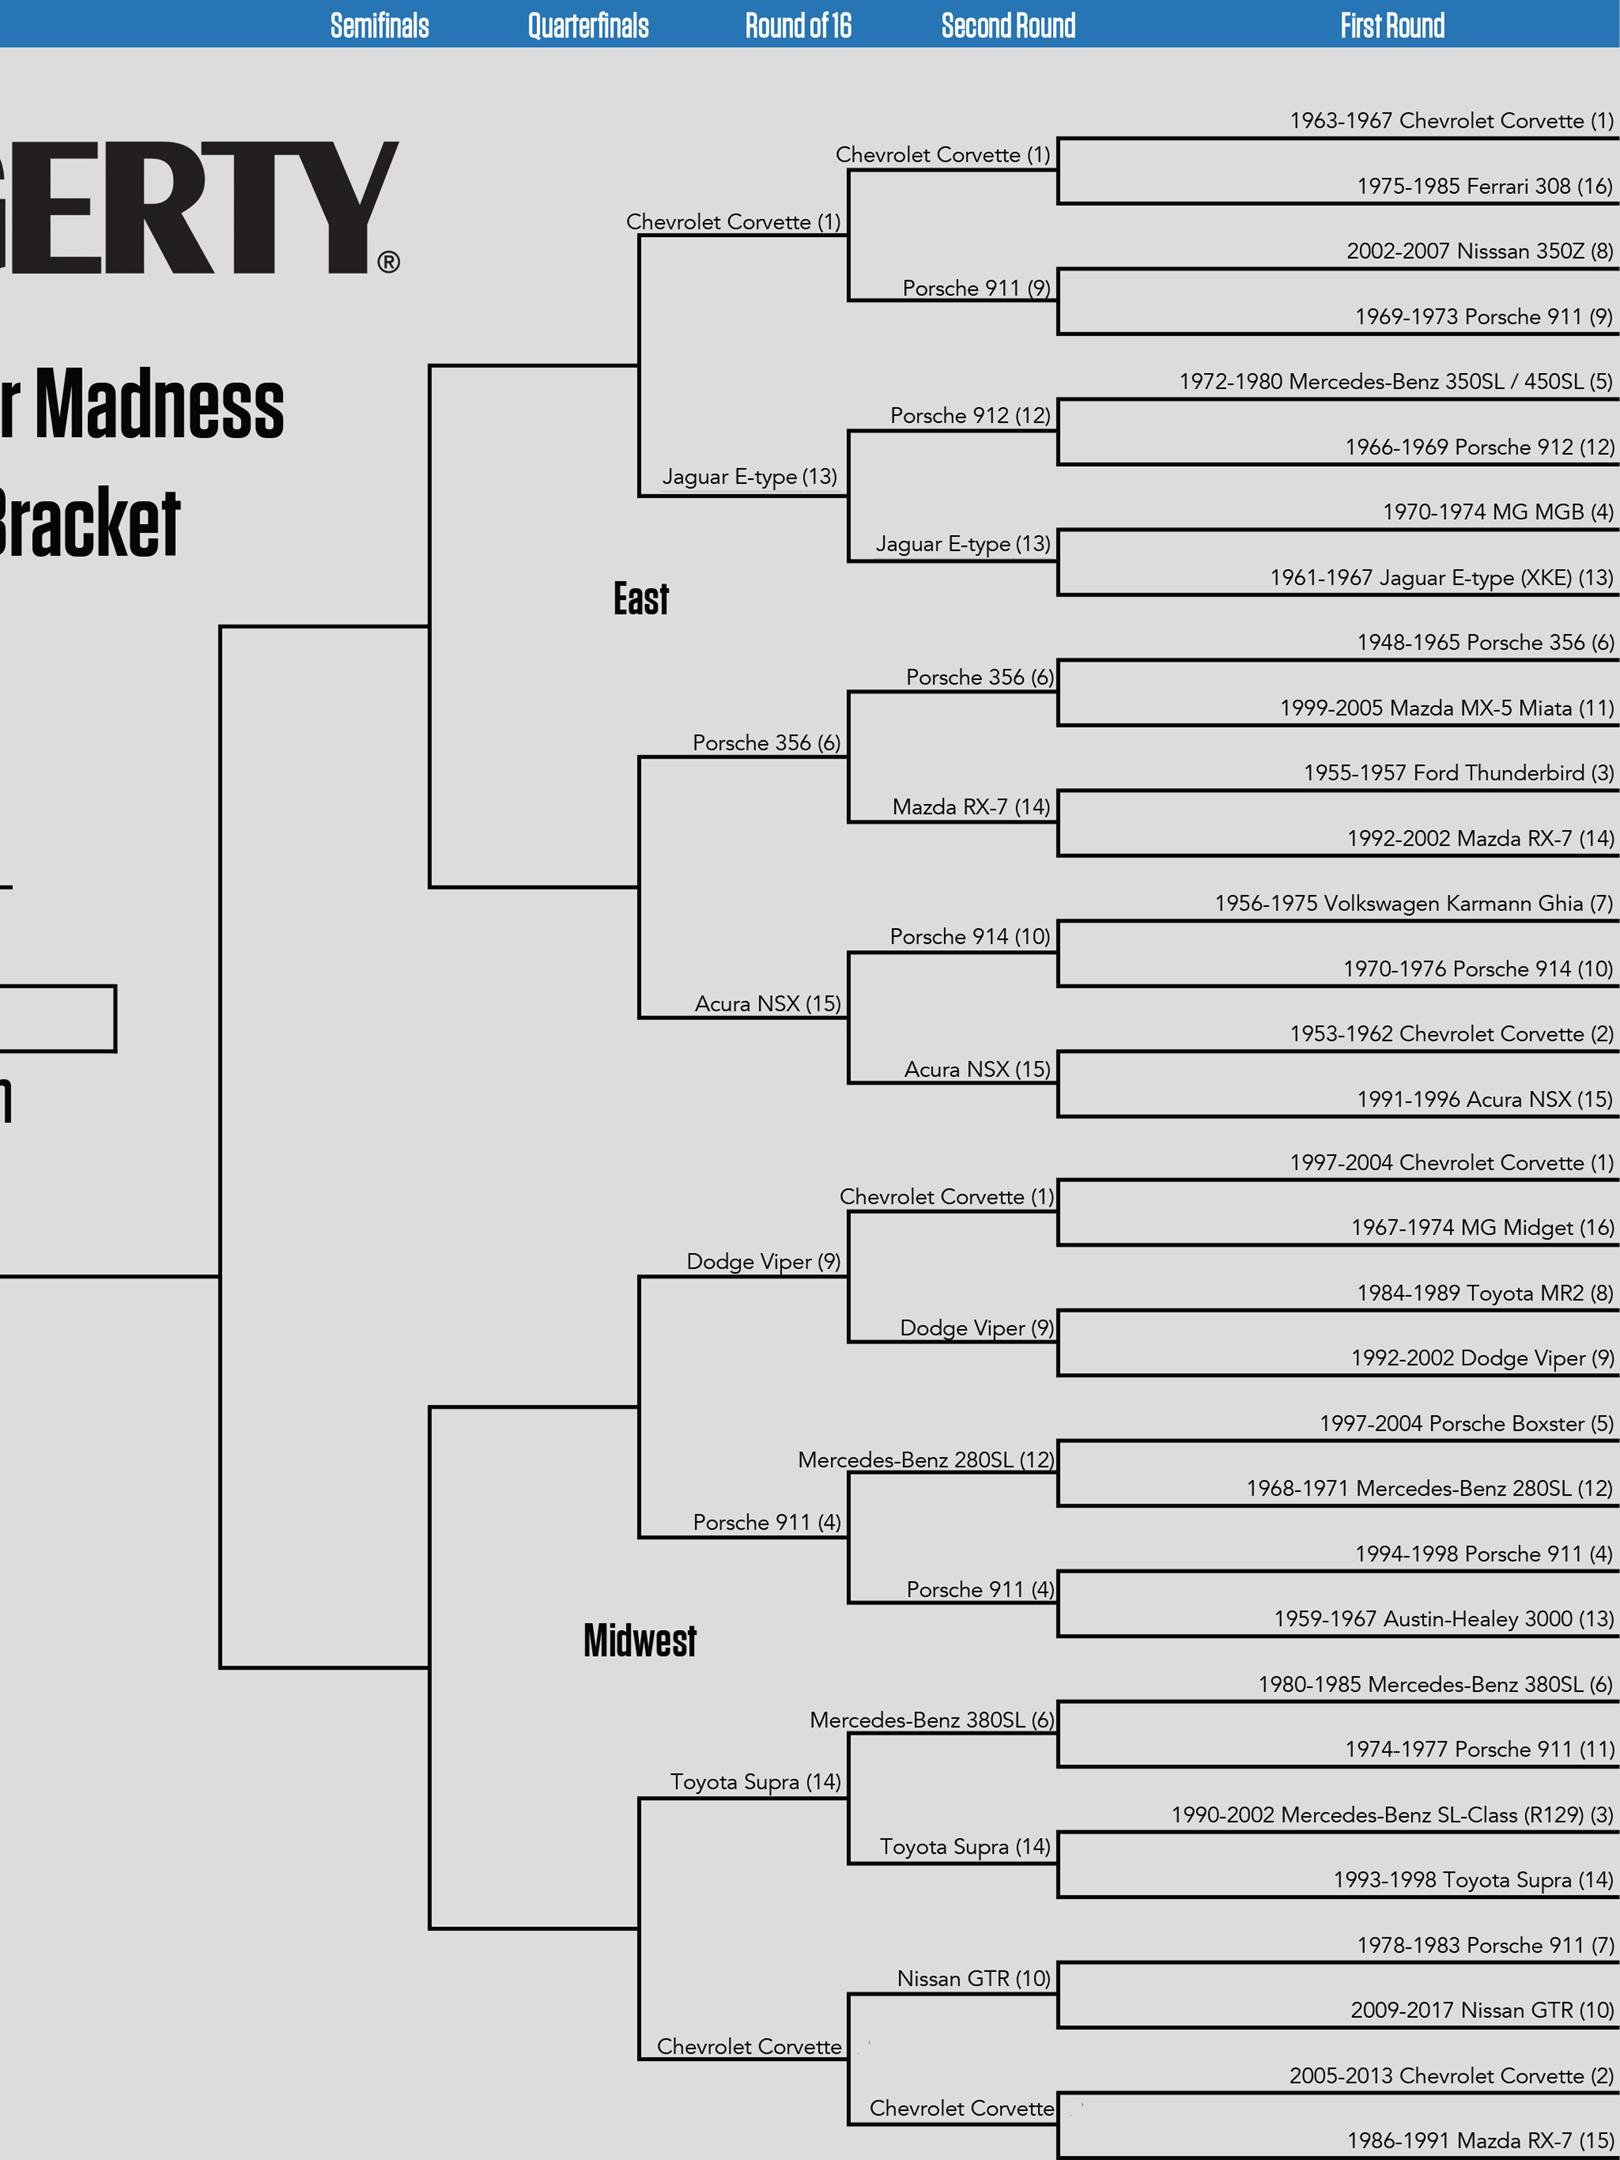 Sweet 16 winners in the East and Midwest